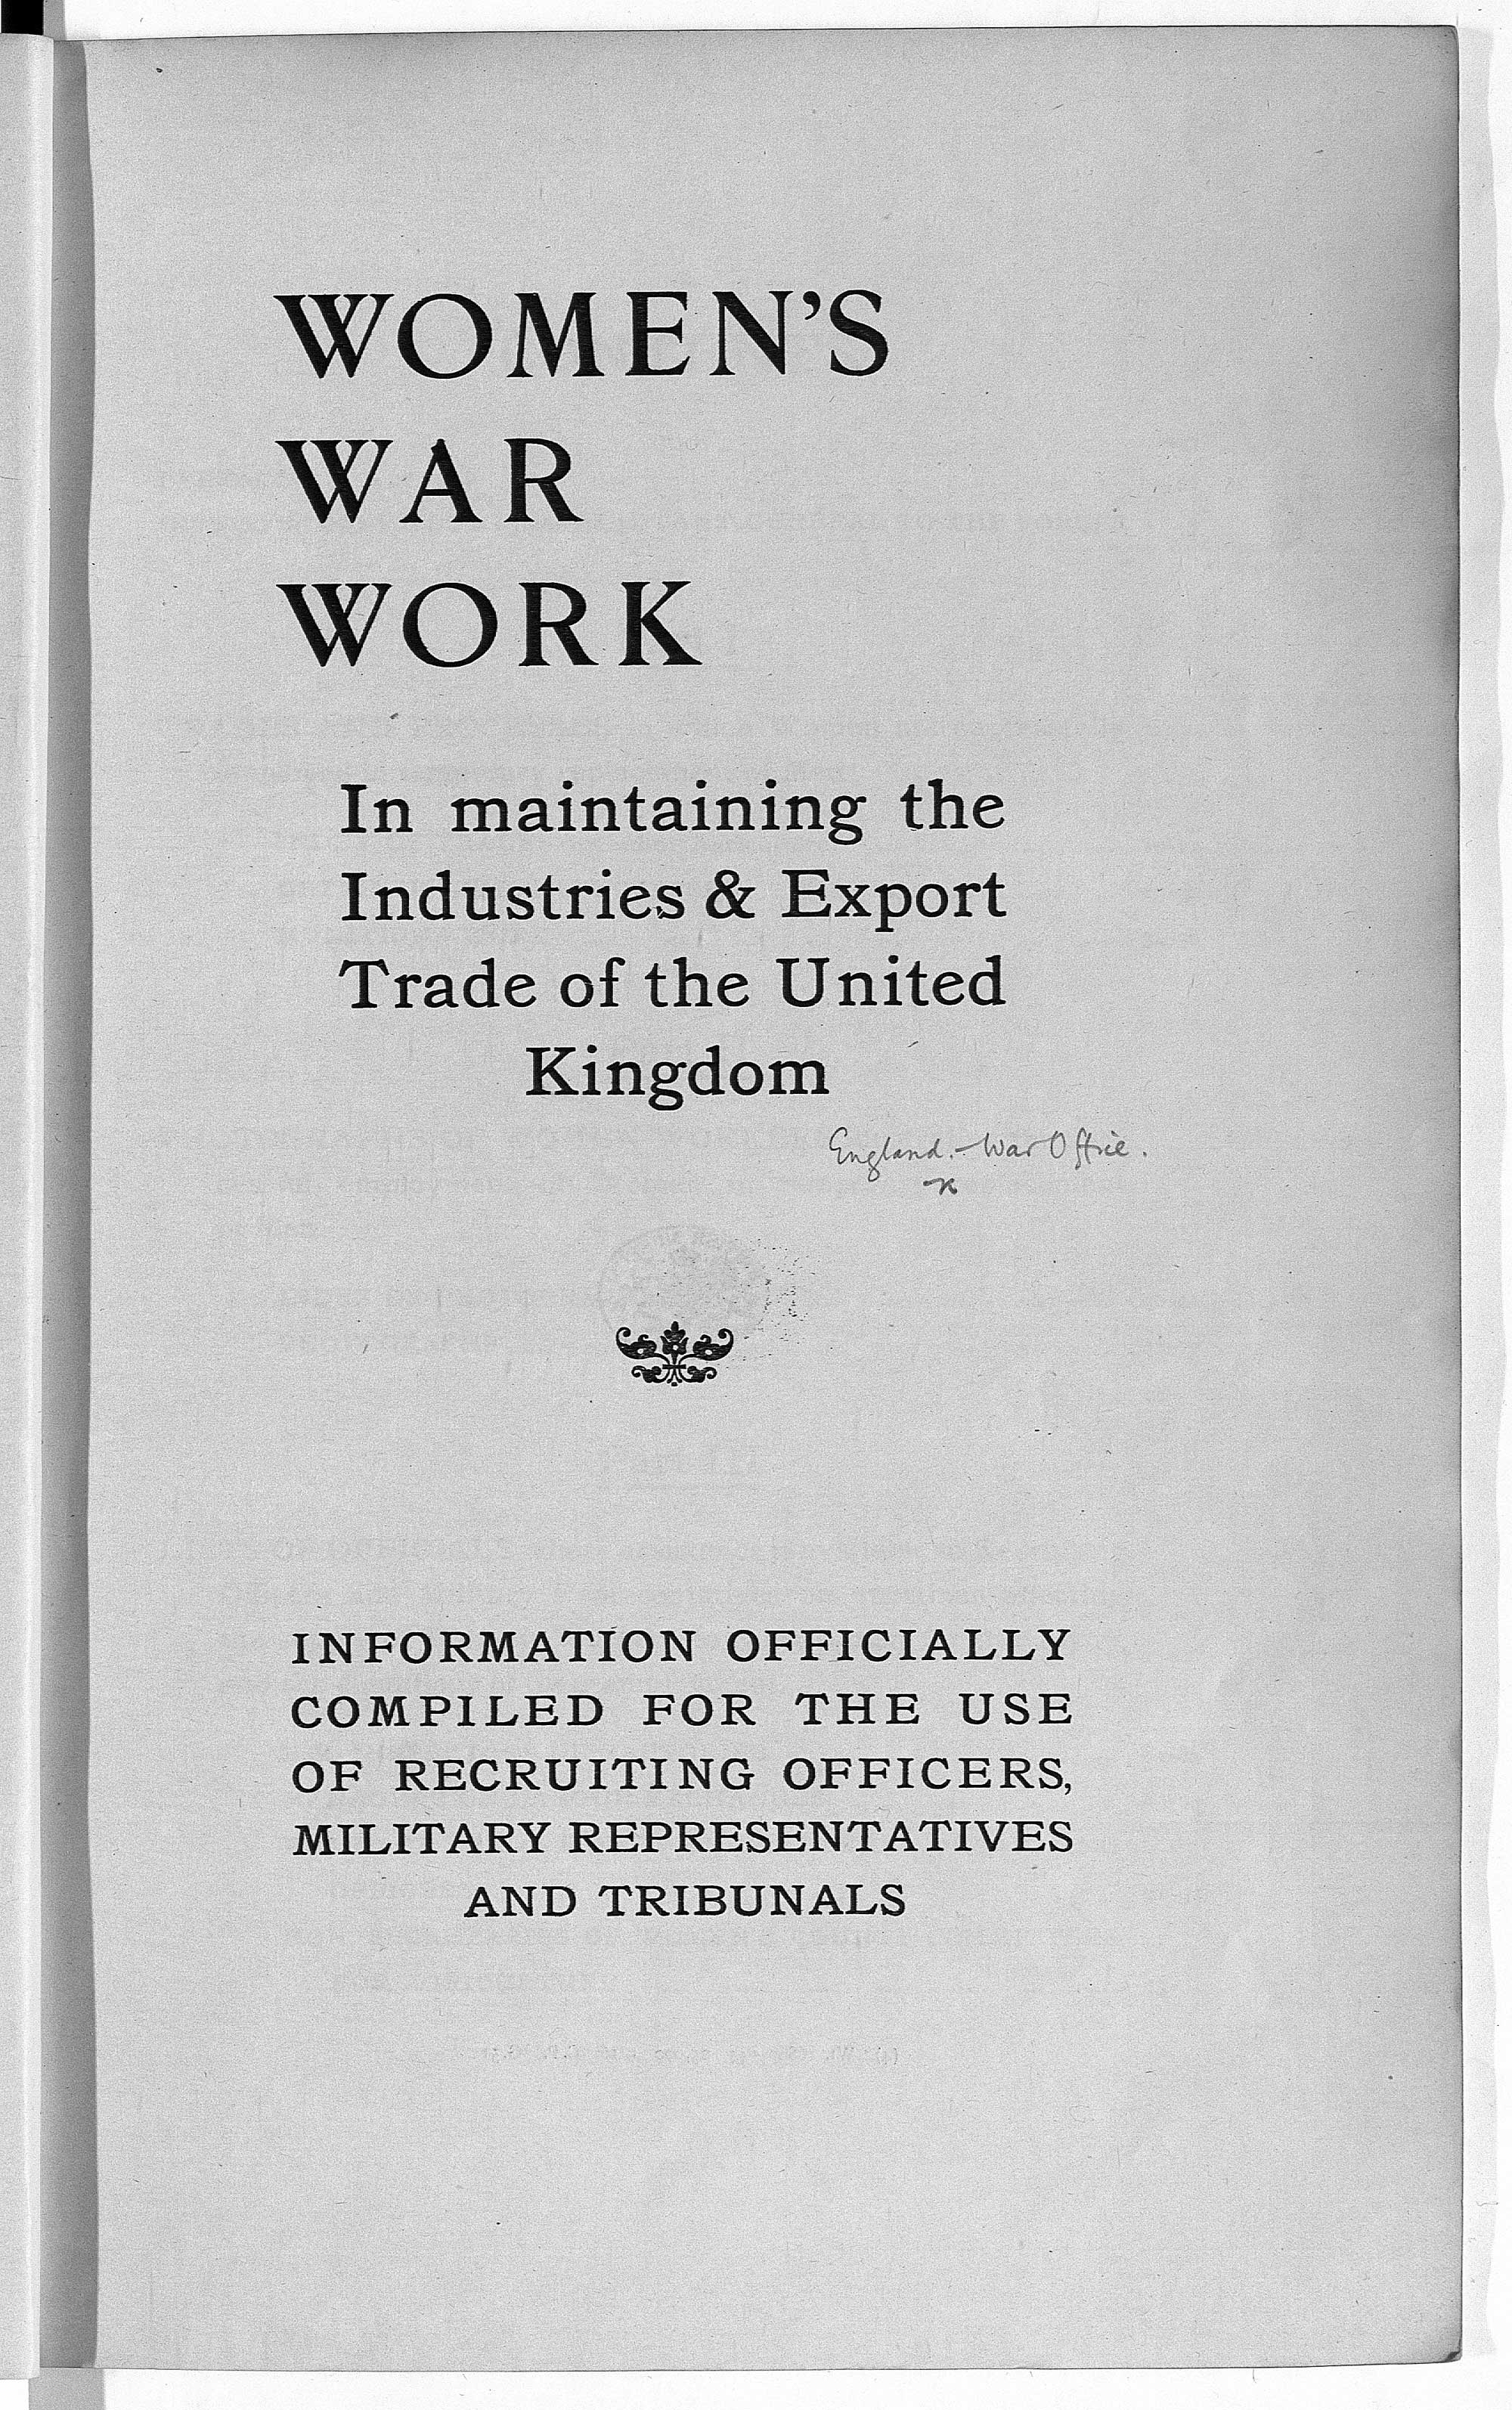 Women's War Work: a publication providing an authoritative list of the trades and processes in which women were employed during 1914-18.